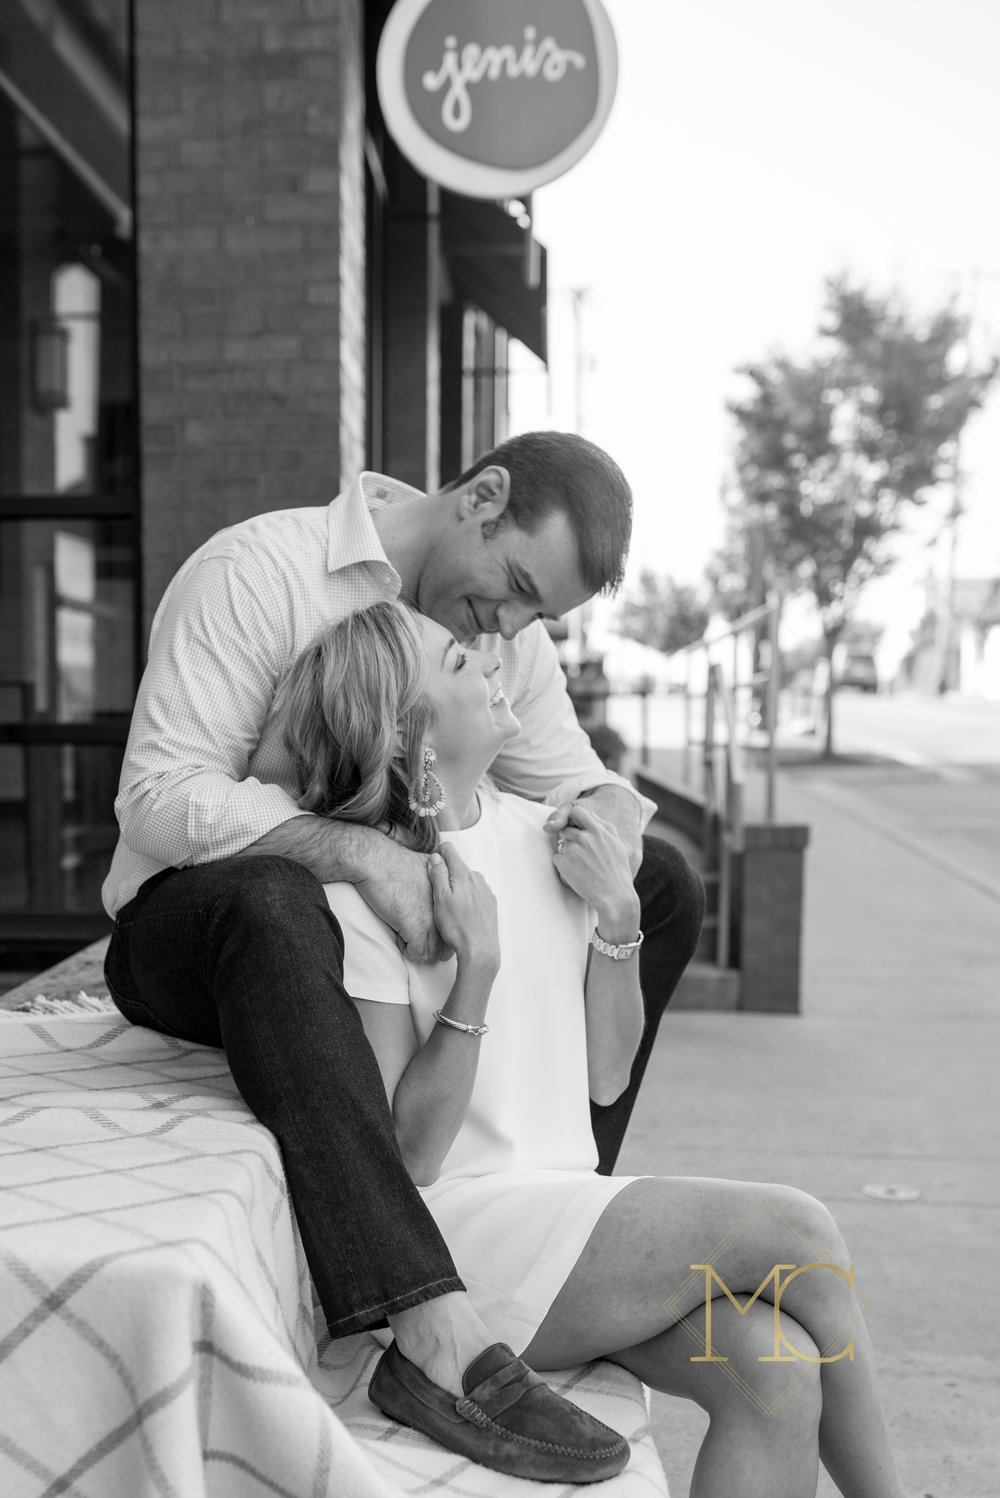 image from nashville engagement photo session of a couple in love at jeni's cream in 12 south